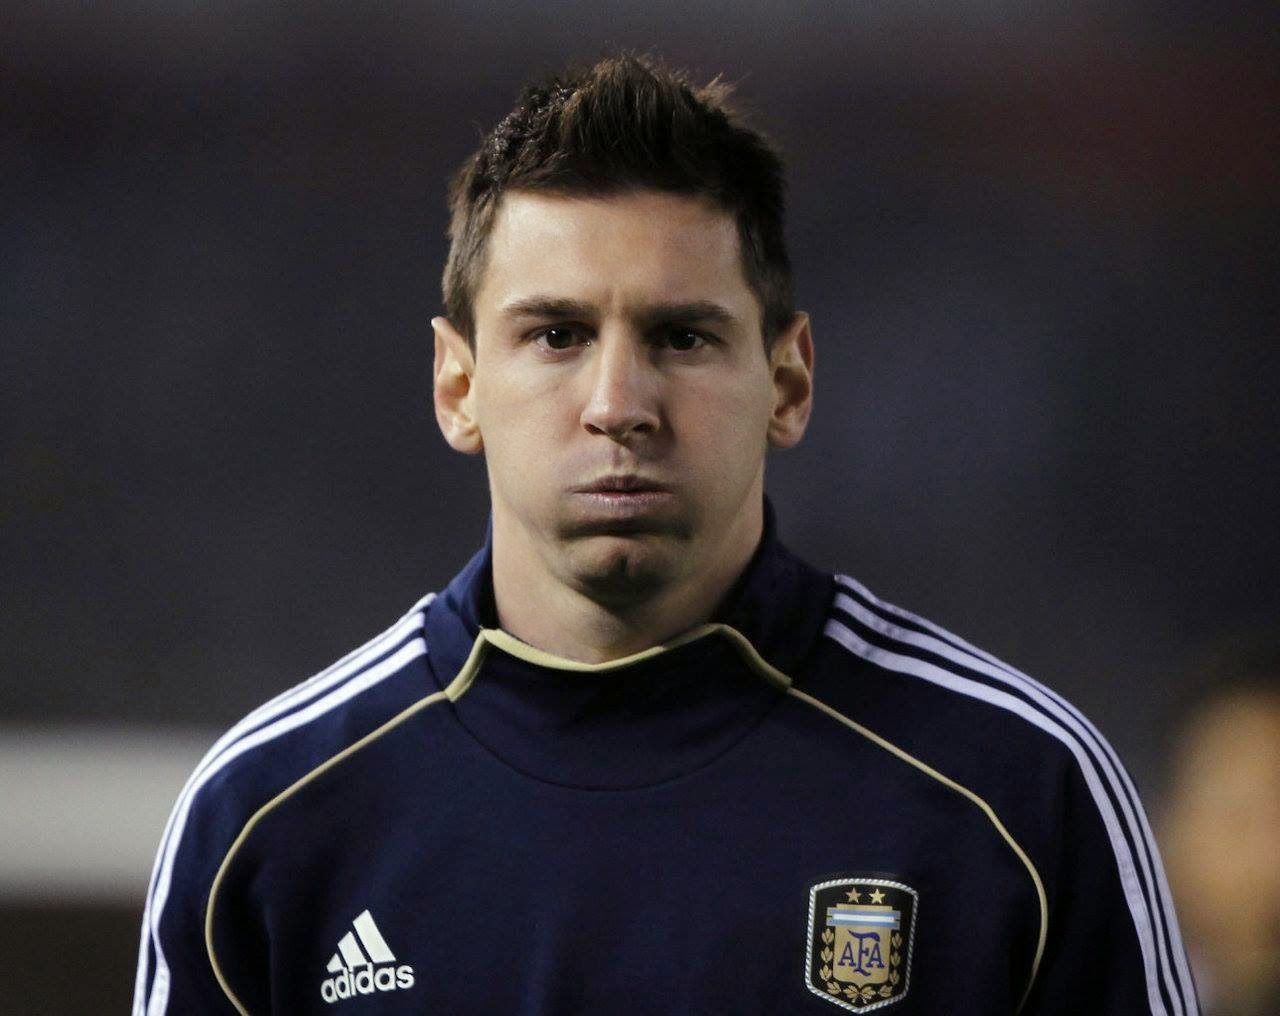 New Lionel Messi Hairstyle 2014 Hair Style Lionel Messi Haircut Lionel Messi Hair Styles 2014